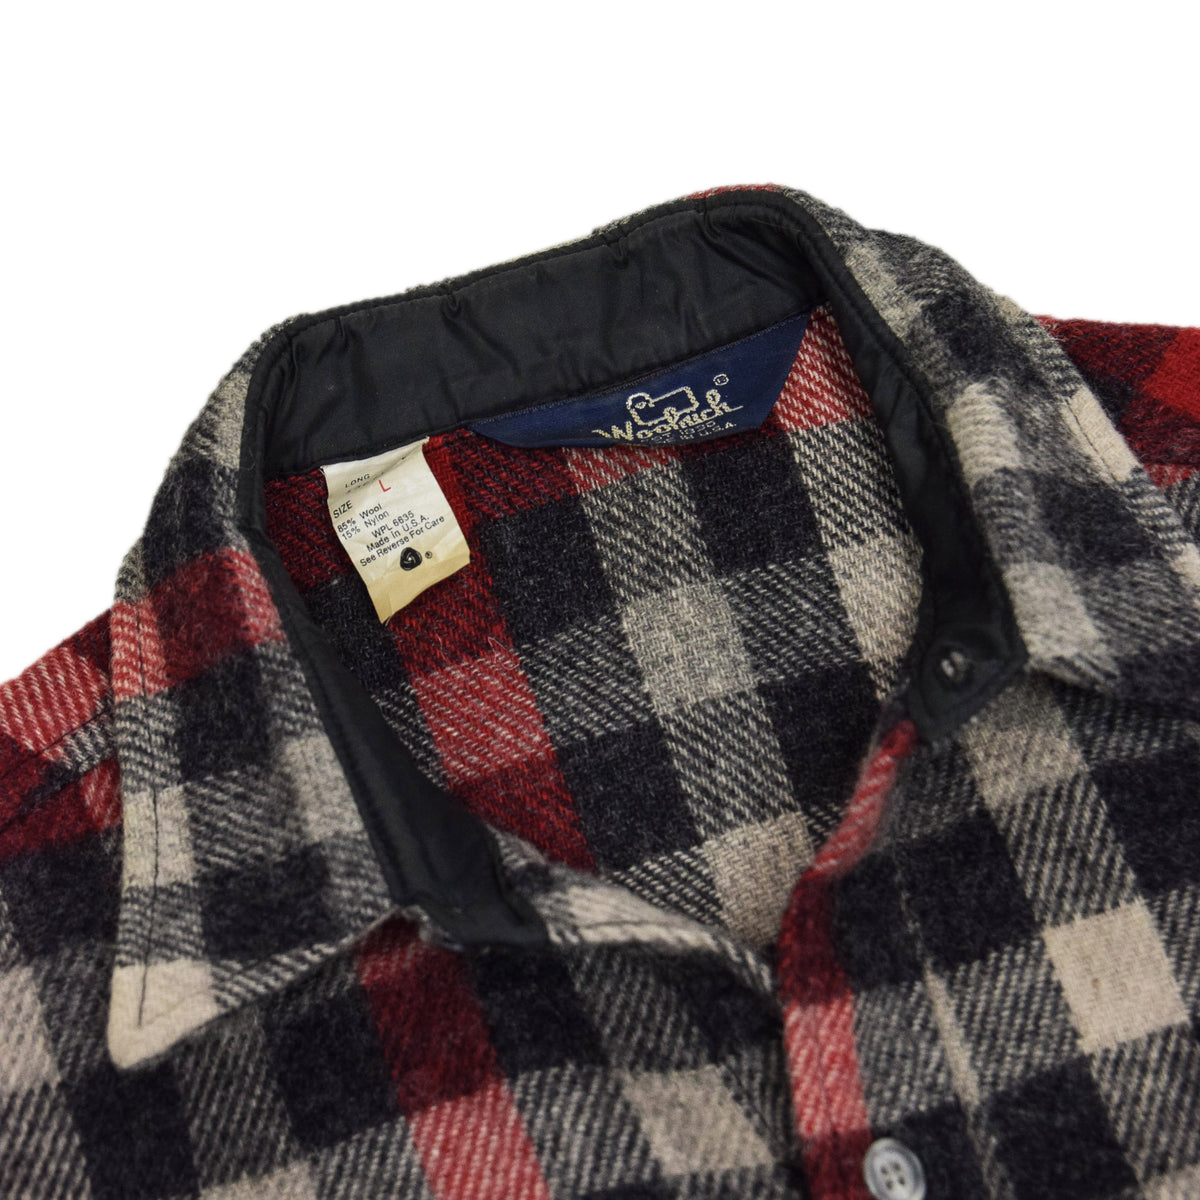 Vintage Woolrich Washed Check Long Sleeve Cotton Shirt Made in USA L COLLAR